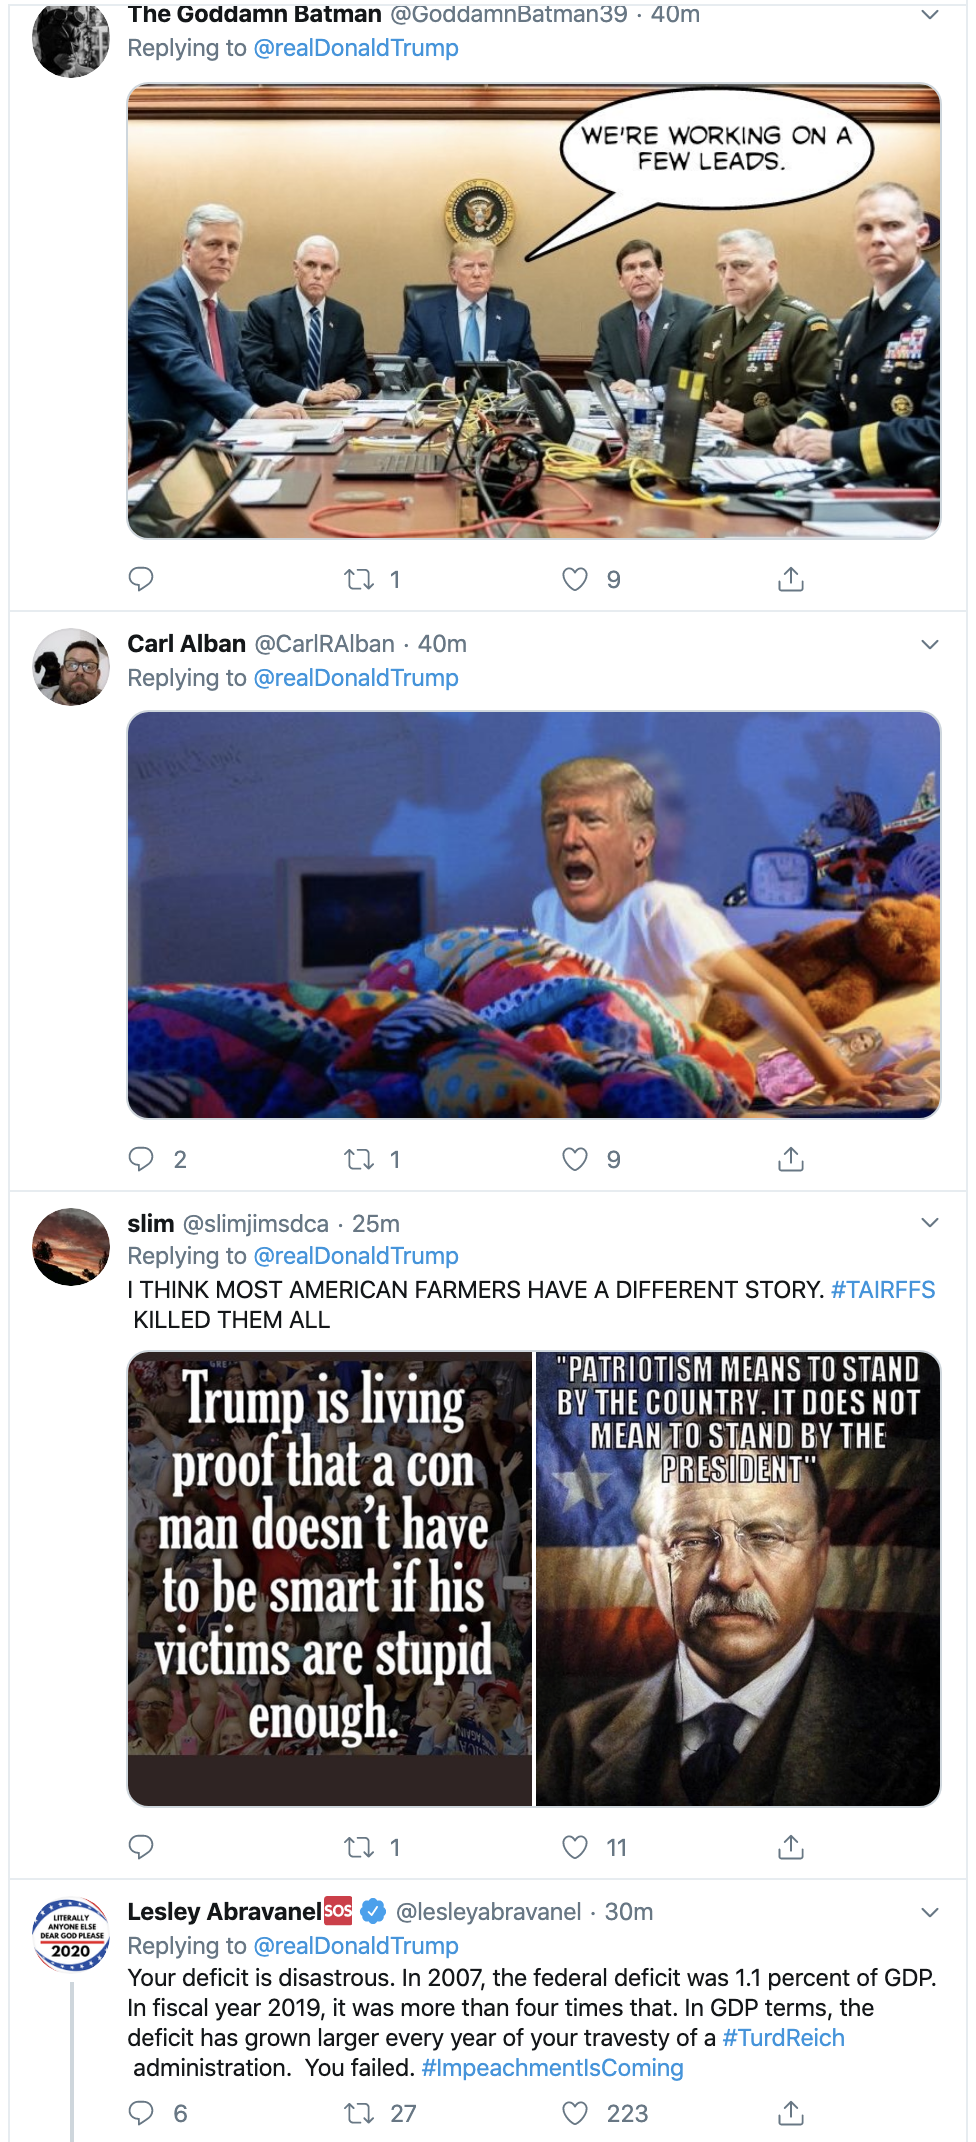 Screen-Shot-2019-10-30-at-7.20.19-AM Trump Goes On AM Twitter Tirade, Misspelling Multiple Words Corruption Crime Domestic Policy Donald Trump Economy Election 2016 Election 2020 Featured Foreign Policy Impeachment Investigation Military National Security Politics Russia Top Stories War